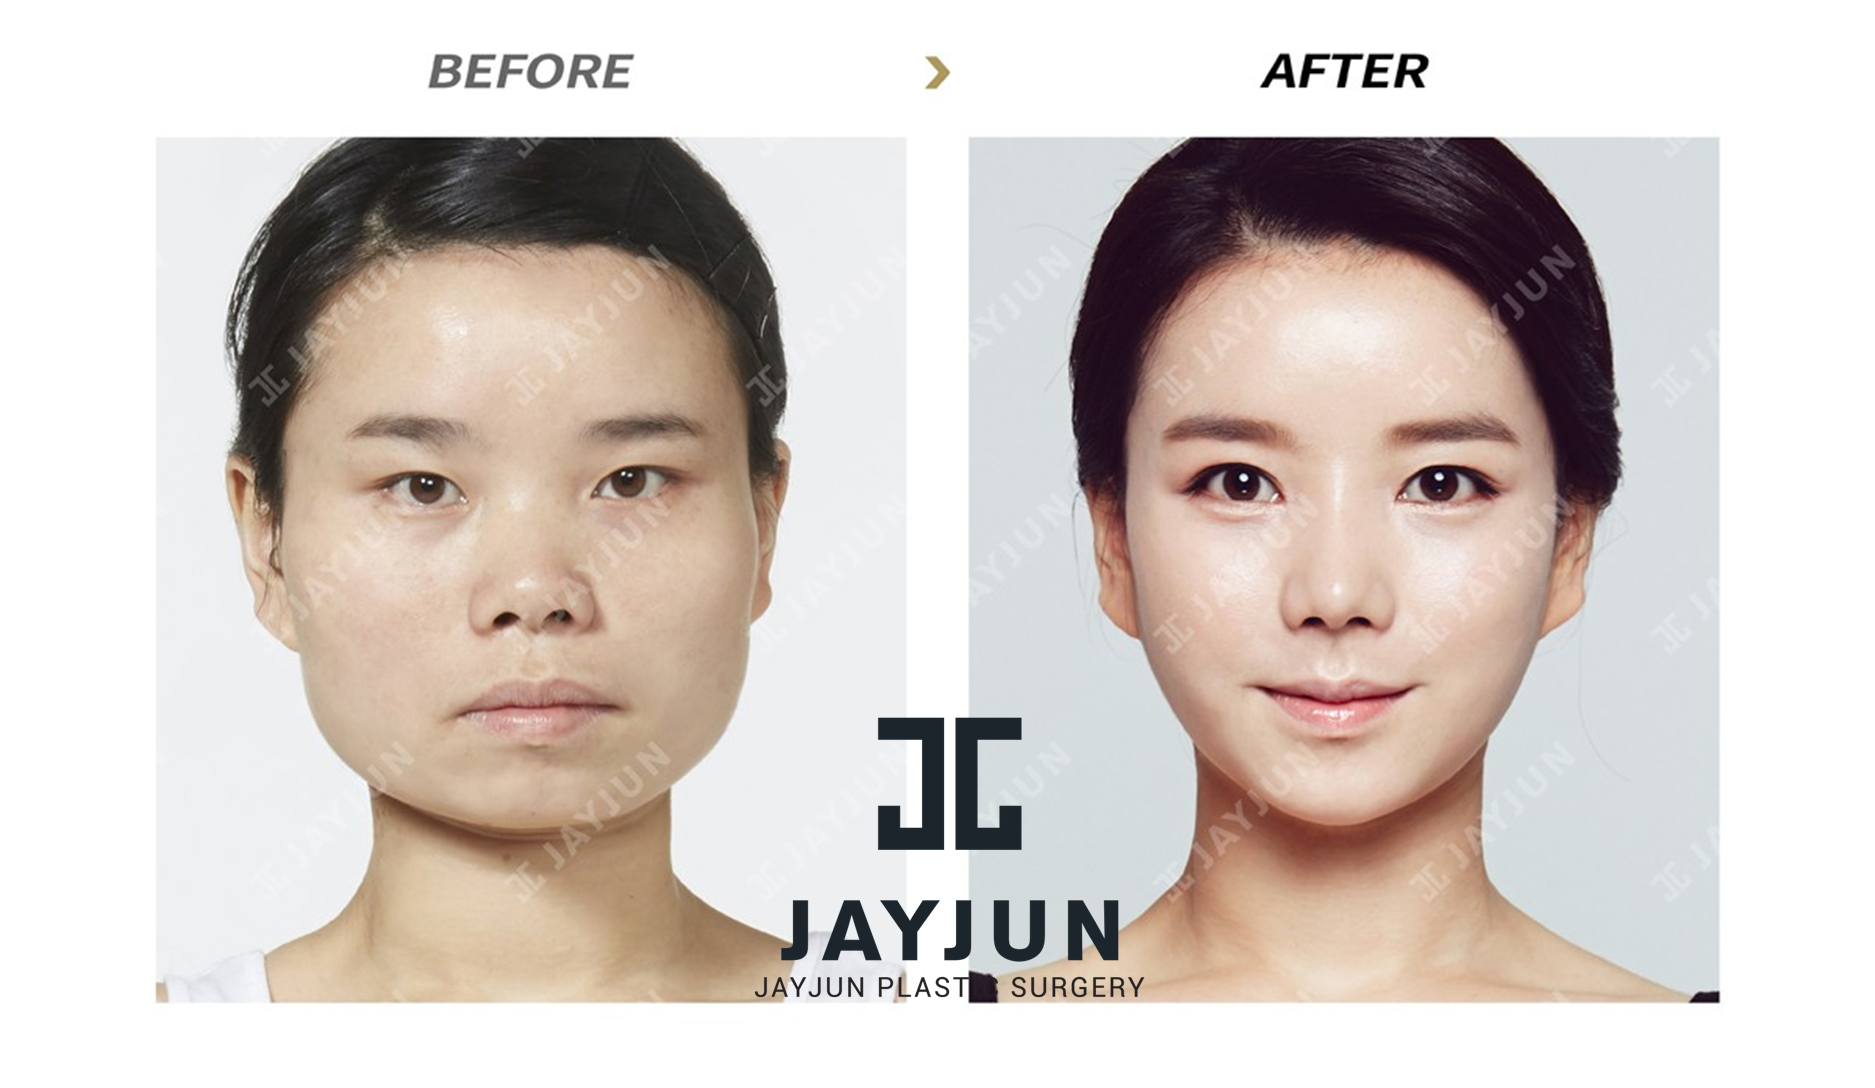 Korea Facial Contouring Surgery Before And After Korea Facial Bone  Contouring Surgery Korea Facial Bone Contouring